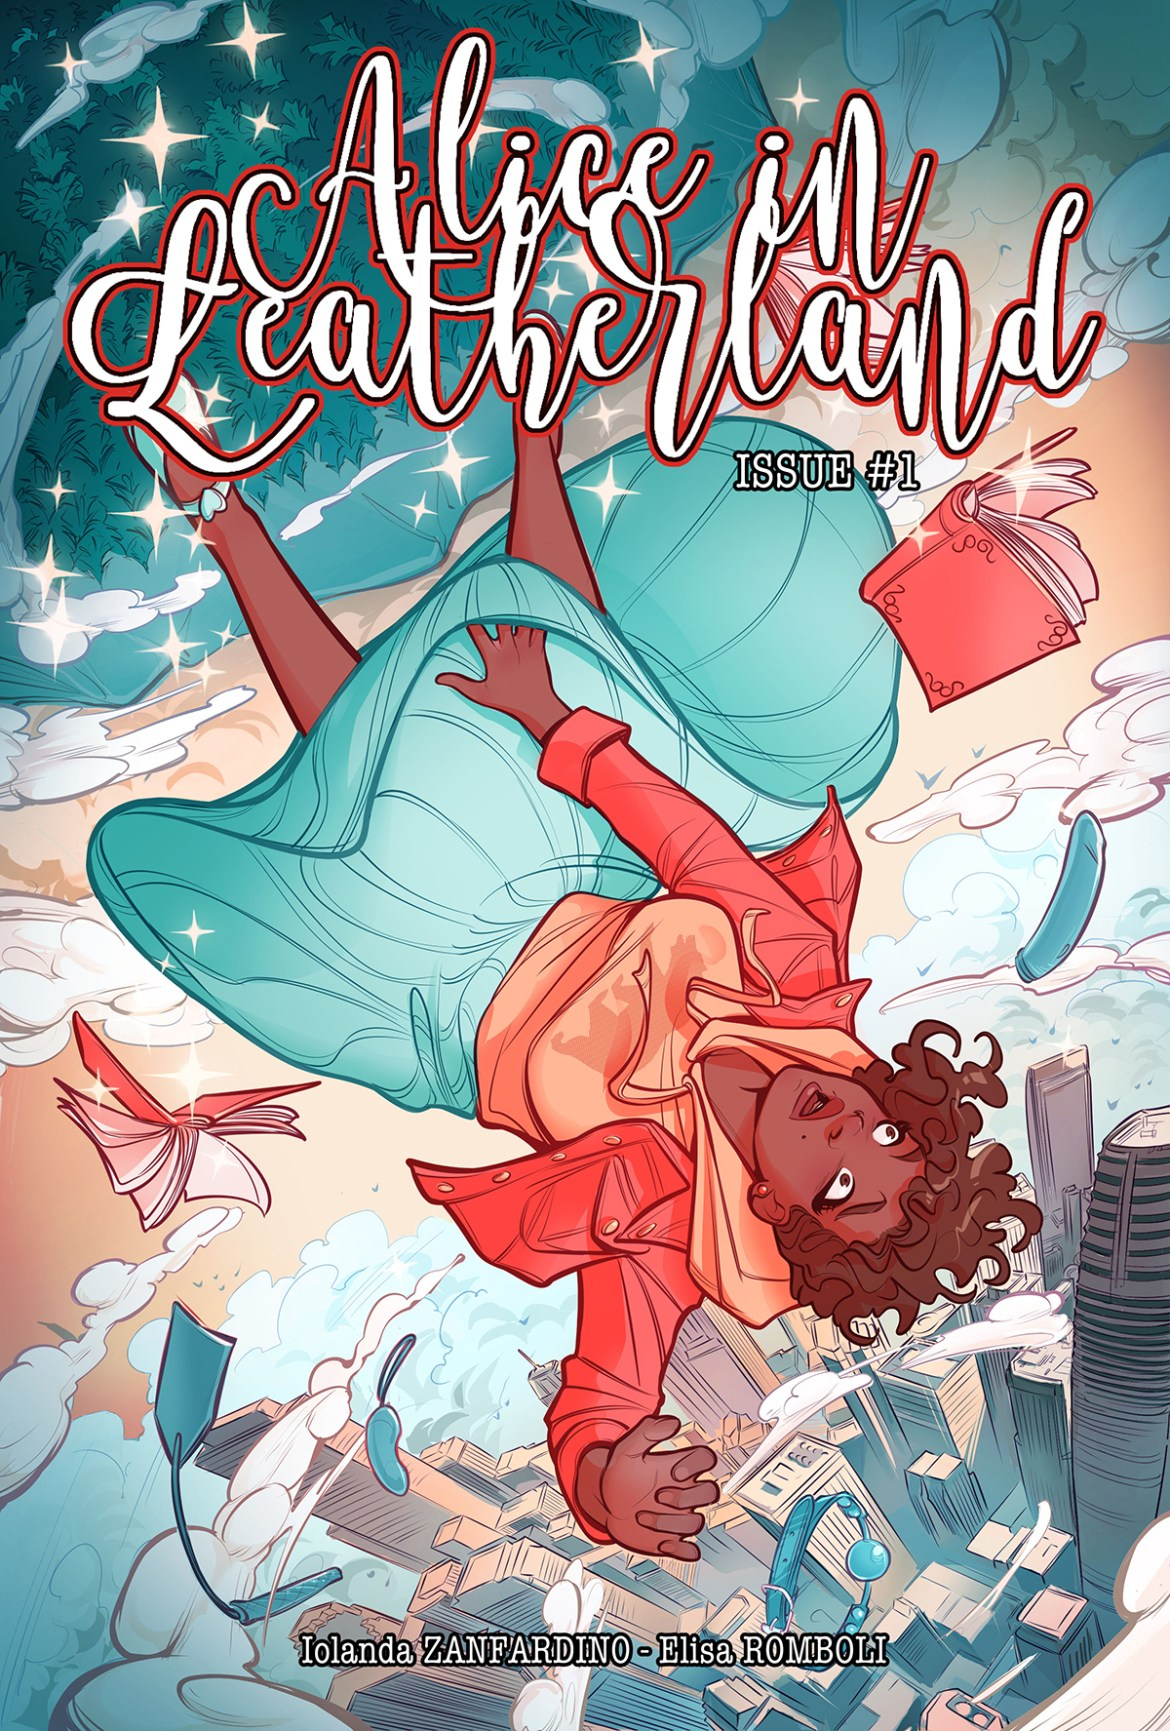 87a7a1cf-38aa-4969-a231-82df88b45c9a ComicList Previews: ALICE IN LEATHERLAND #1